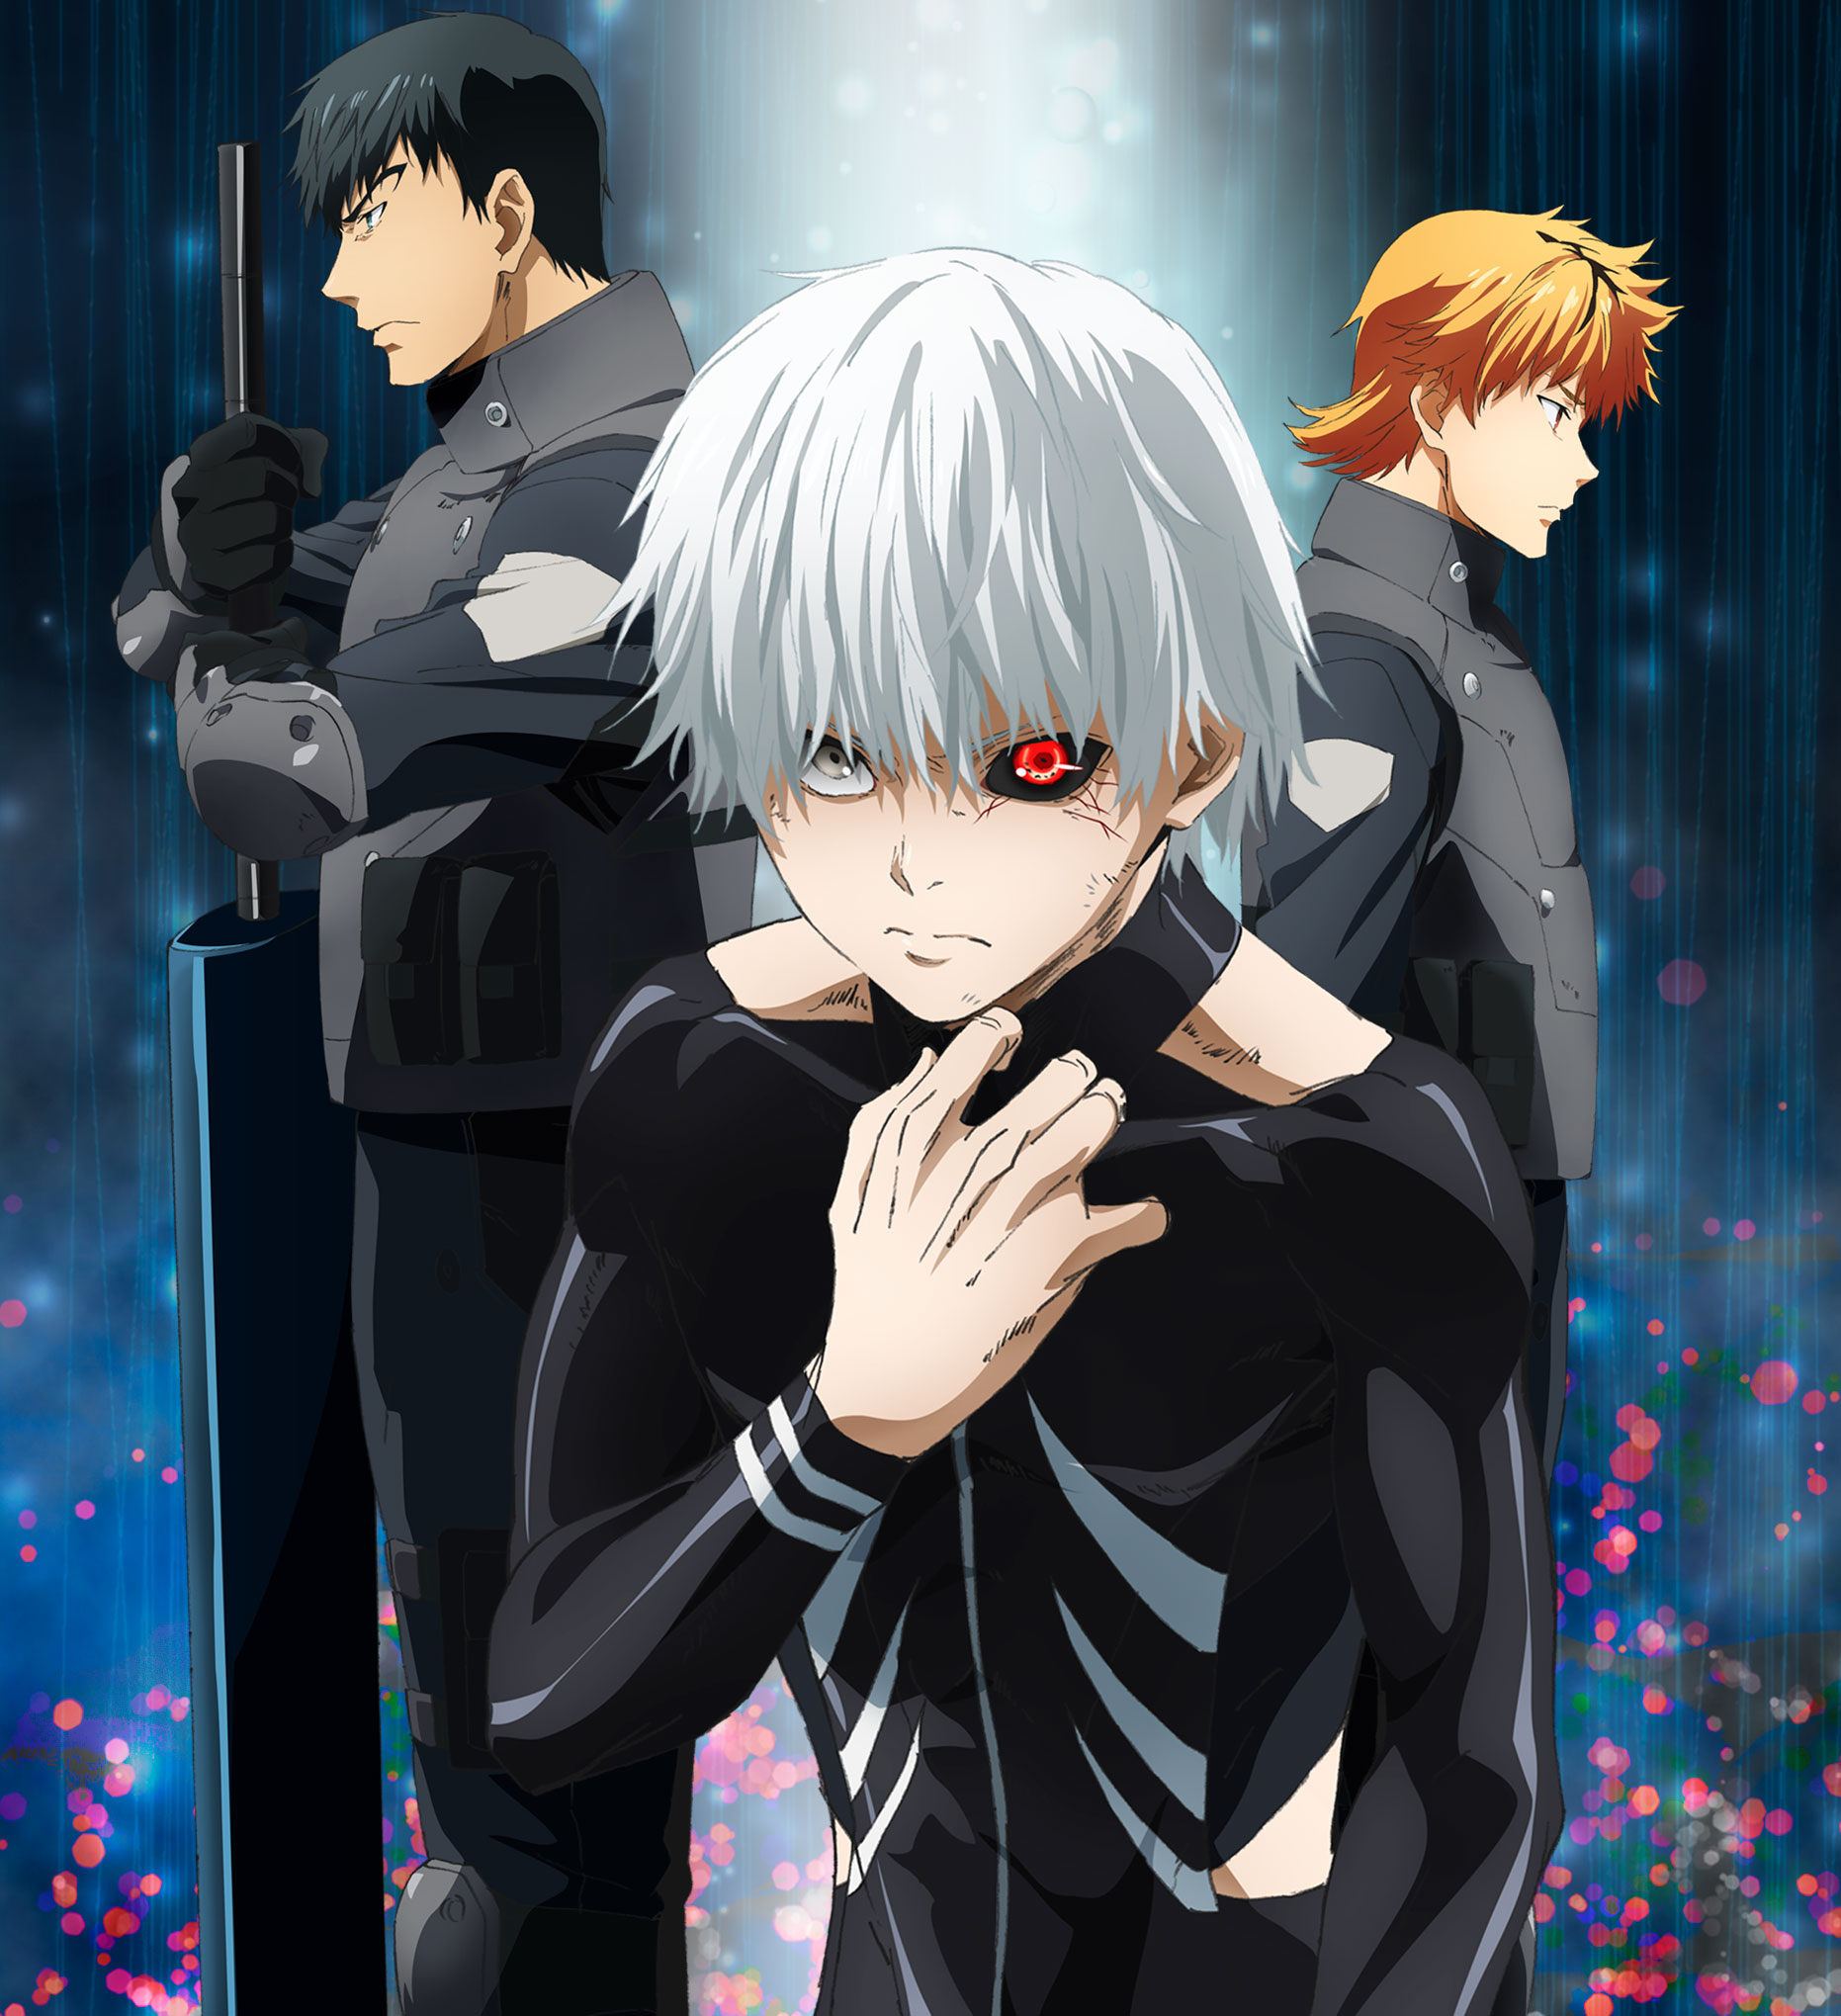 http://www.marv.jp/special/tokyoghoul/first/images/top_box/visual2.jpg